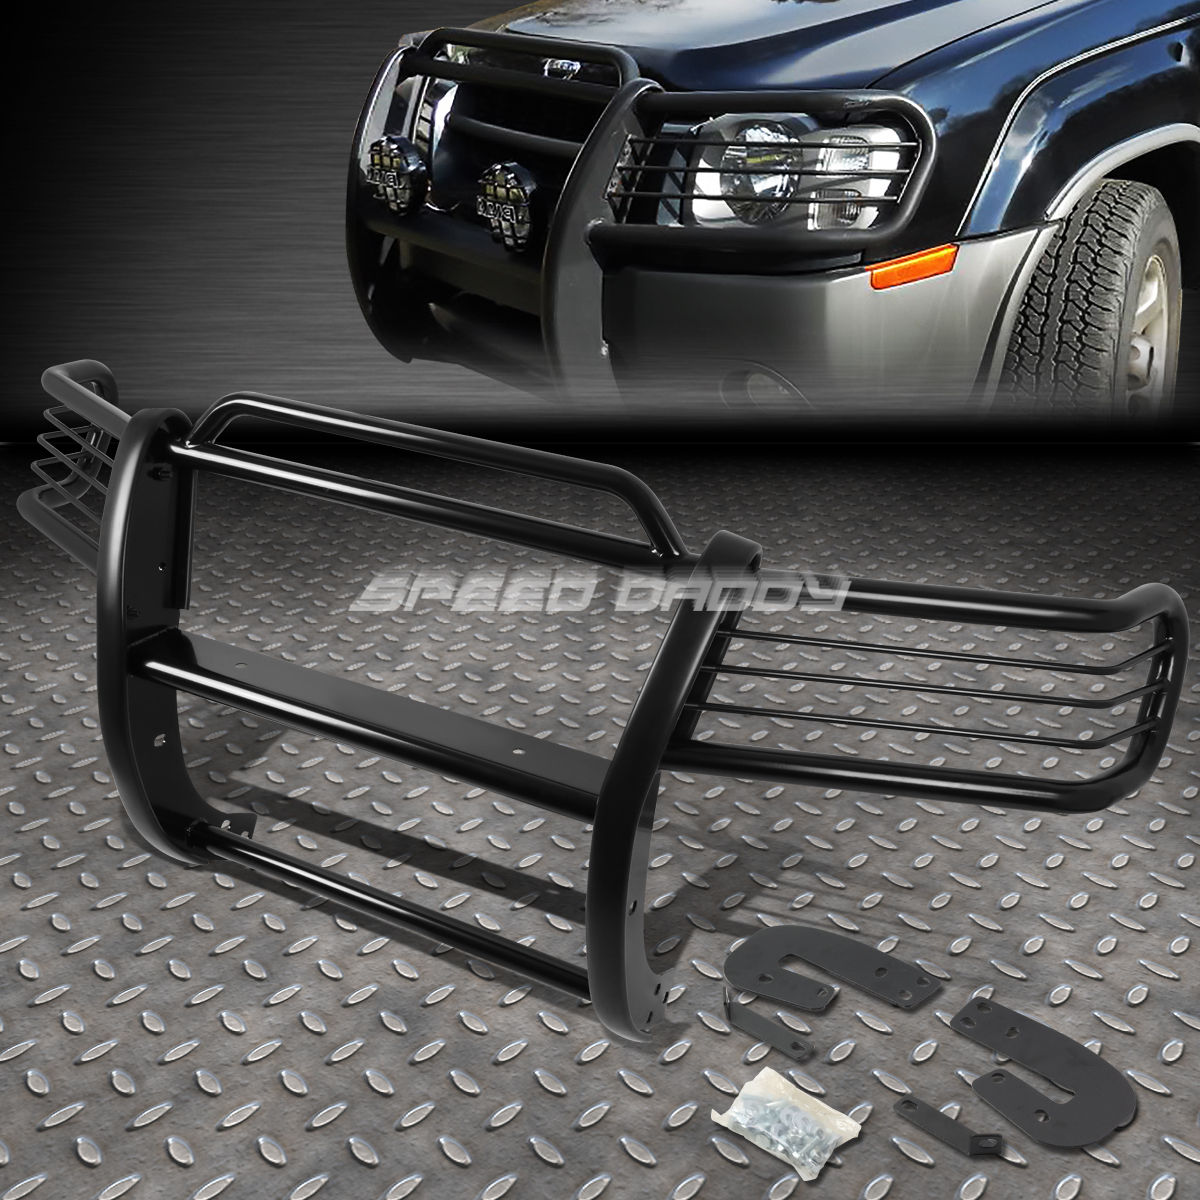 グリル 黒塗装されたマイルストーンフロントバンパーグリルガード02-04 NISSAN XTERRA WD22 BLACK COATED MILD STEEL FRONT BUMPER GRILL GUARD FOR 02-04 NISSAN XTERRA WD22